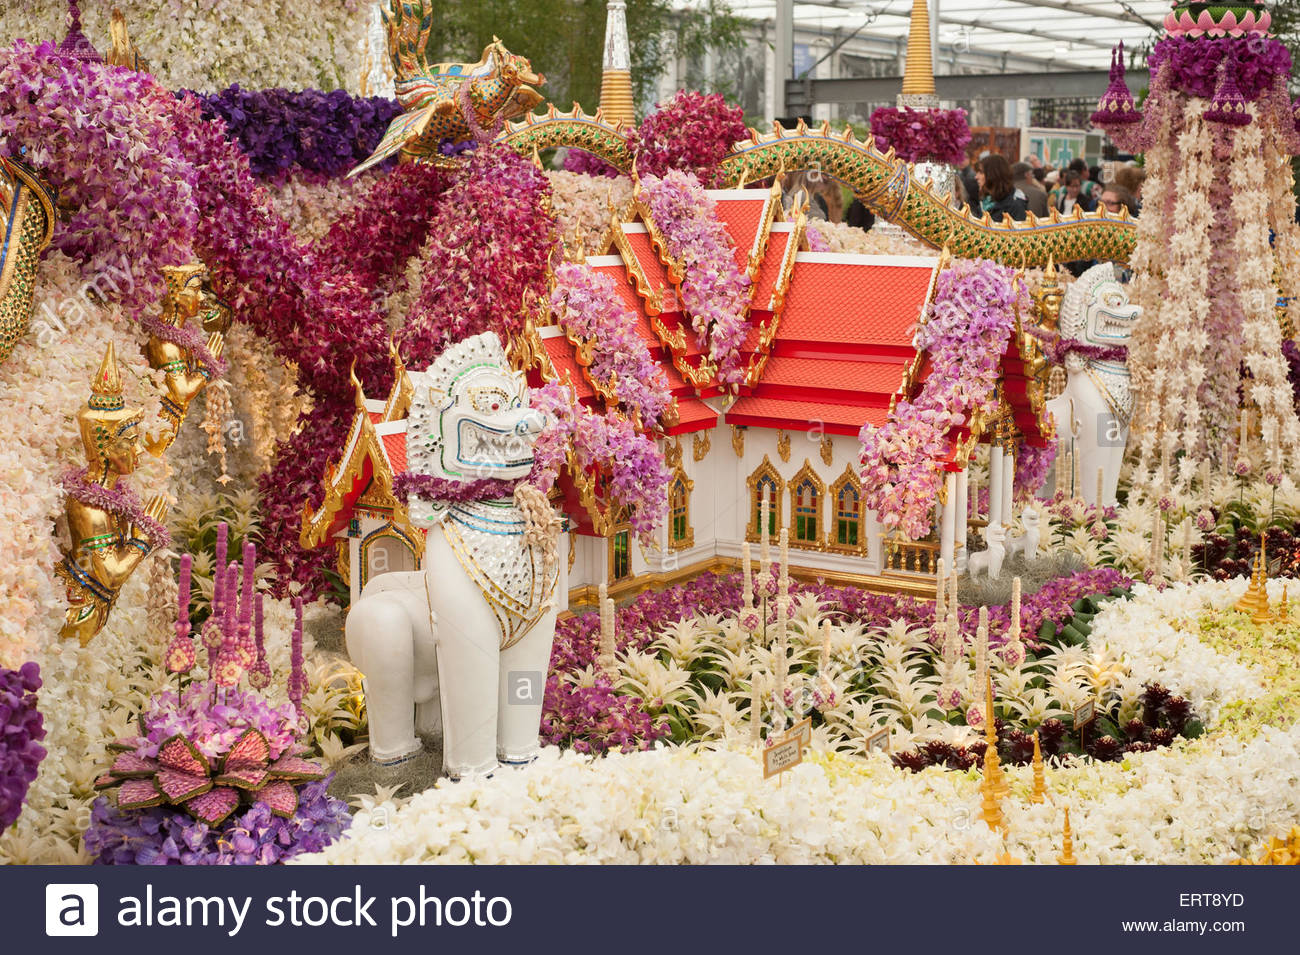 Rhs chelsea flower show 2015 display of the nong nooch - Royal flower show ...